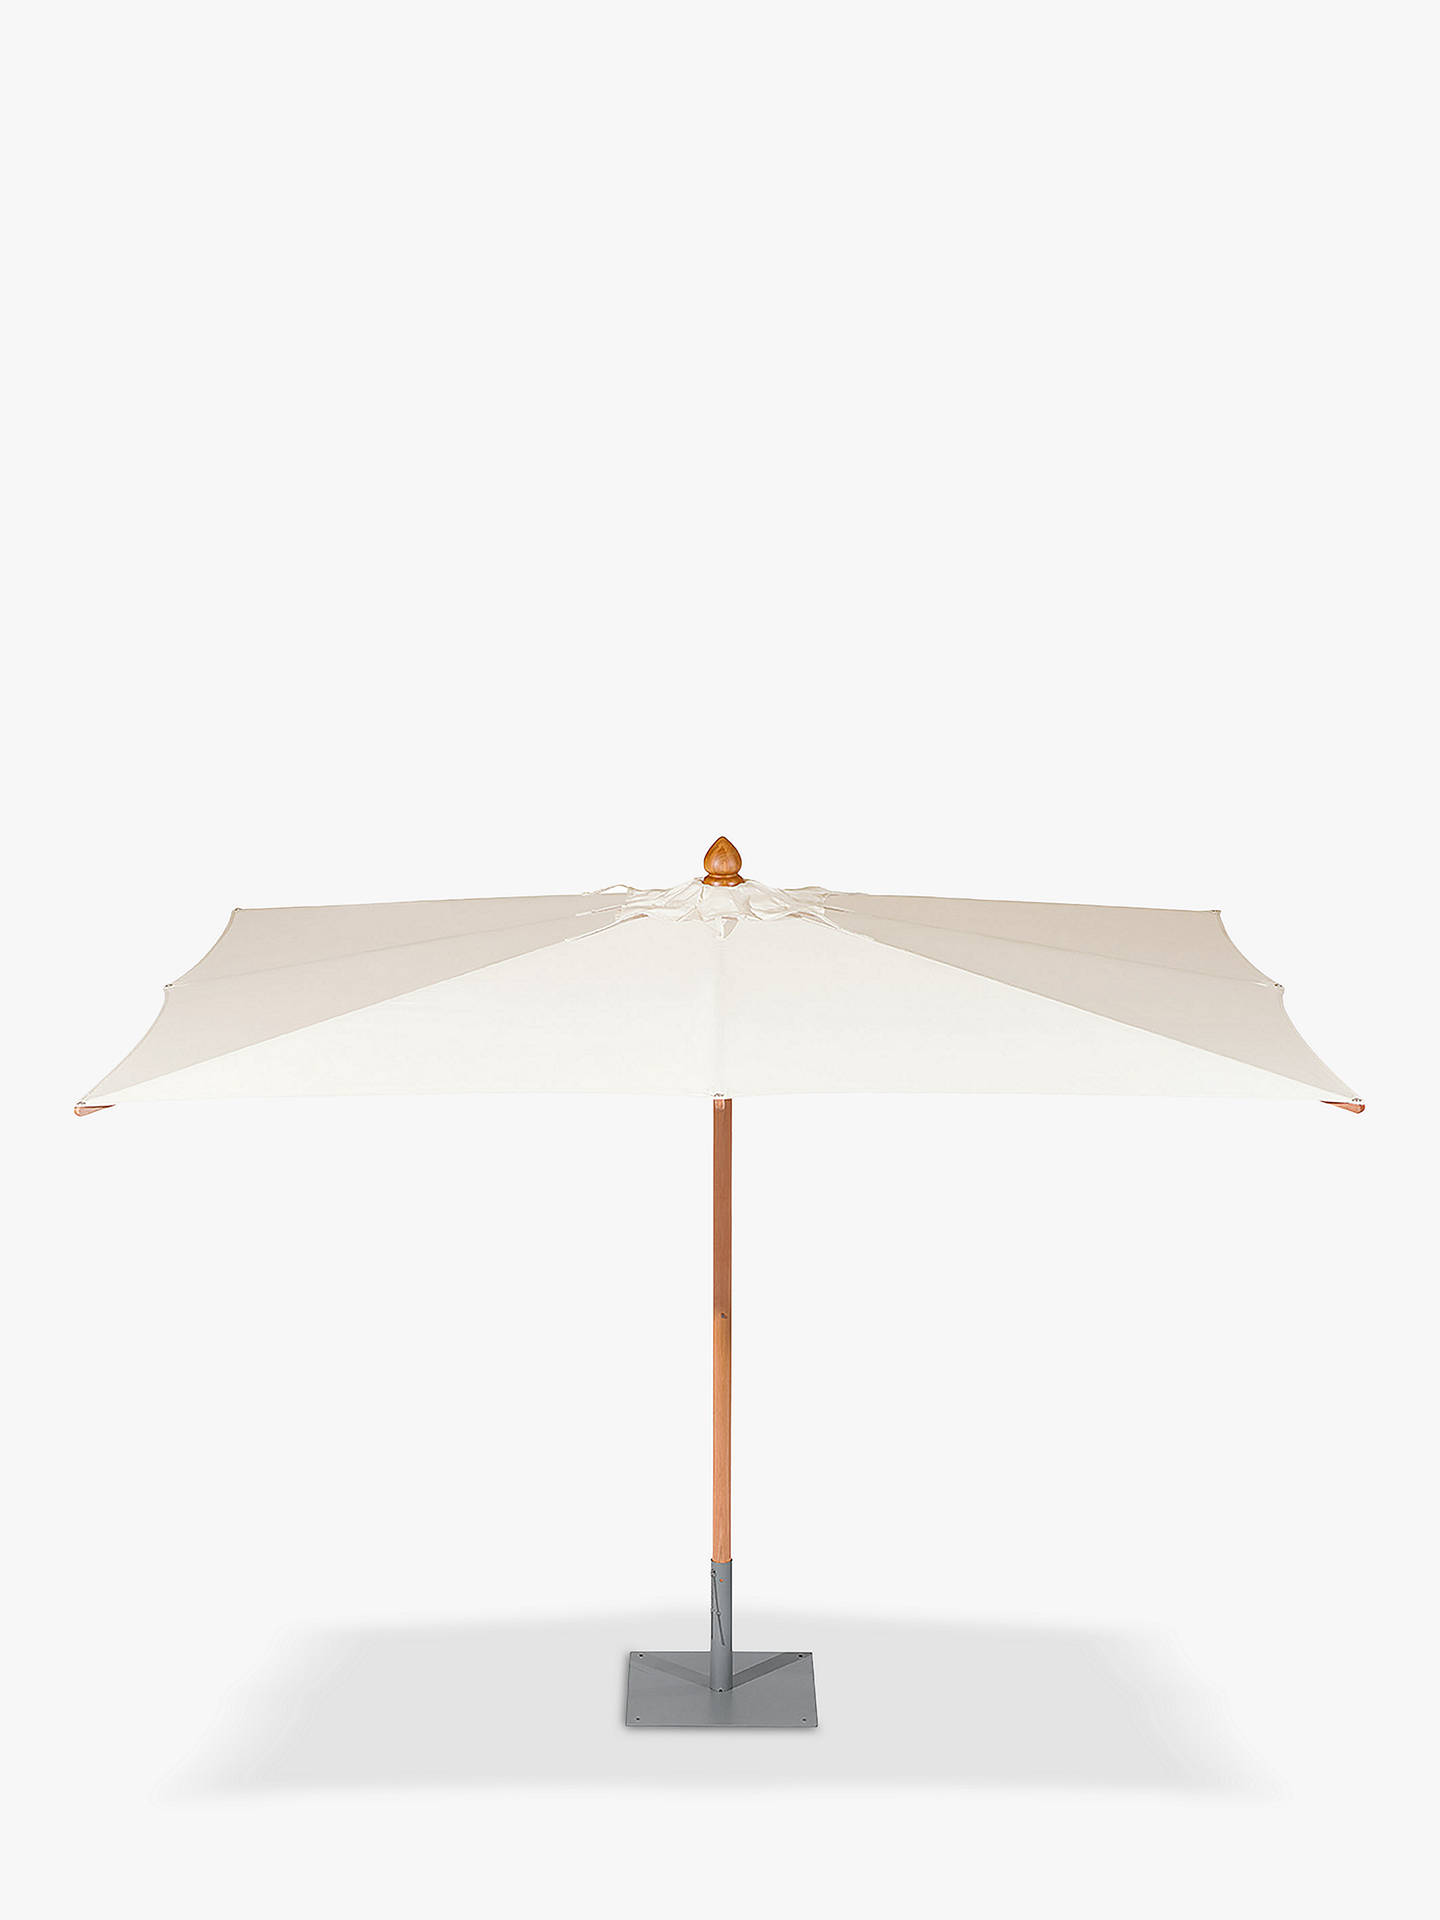 Buy Barlow Tyrie Napoli Telescopic Rectangular Parasol, 3.5m Online at johnlewis.com